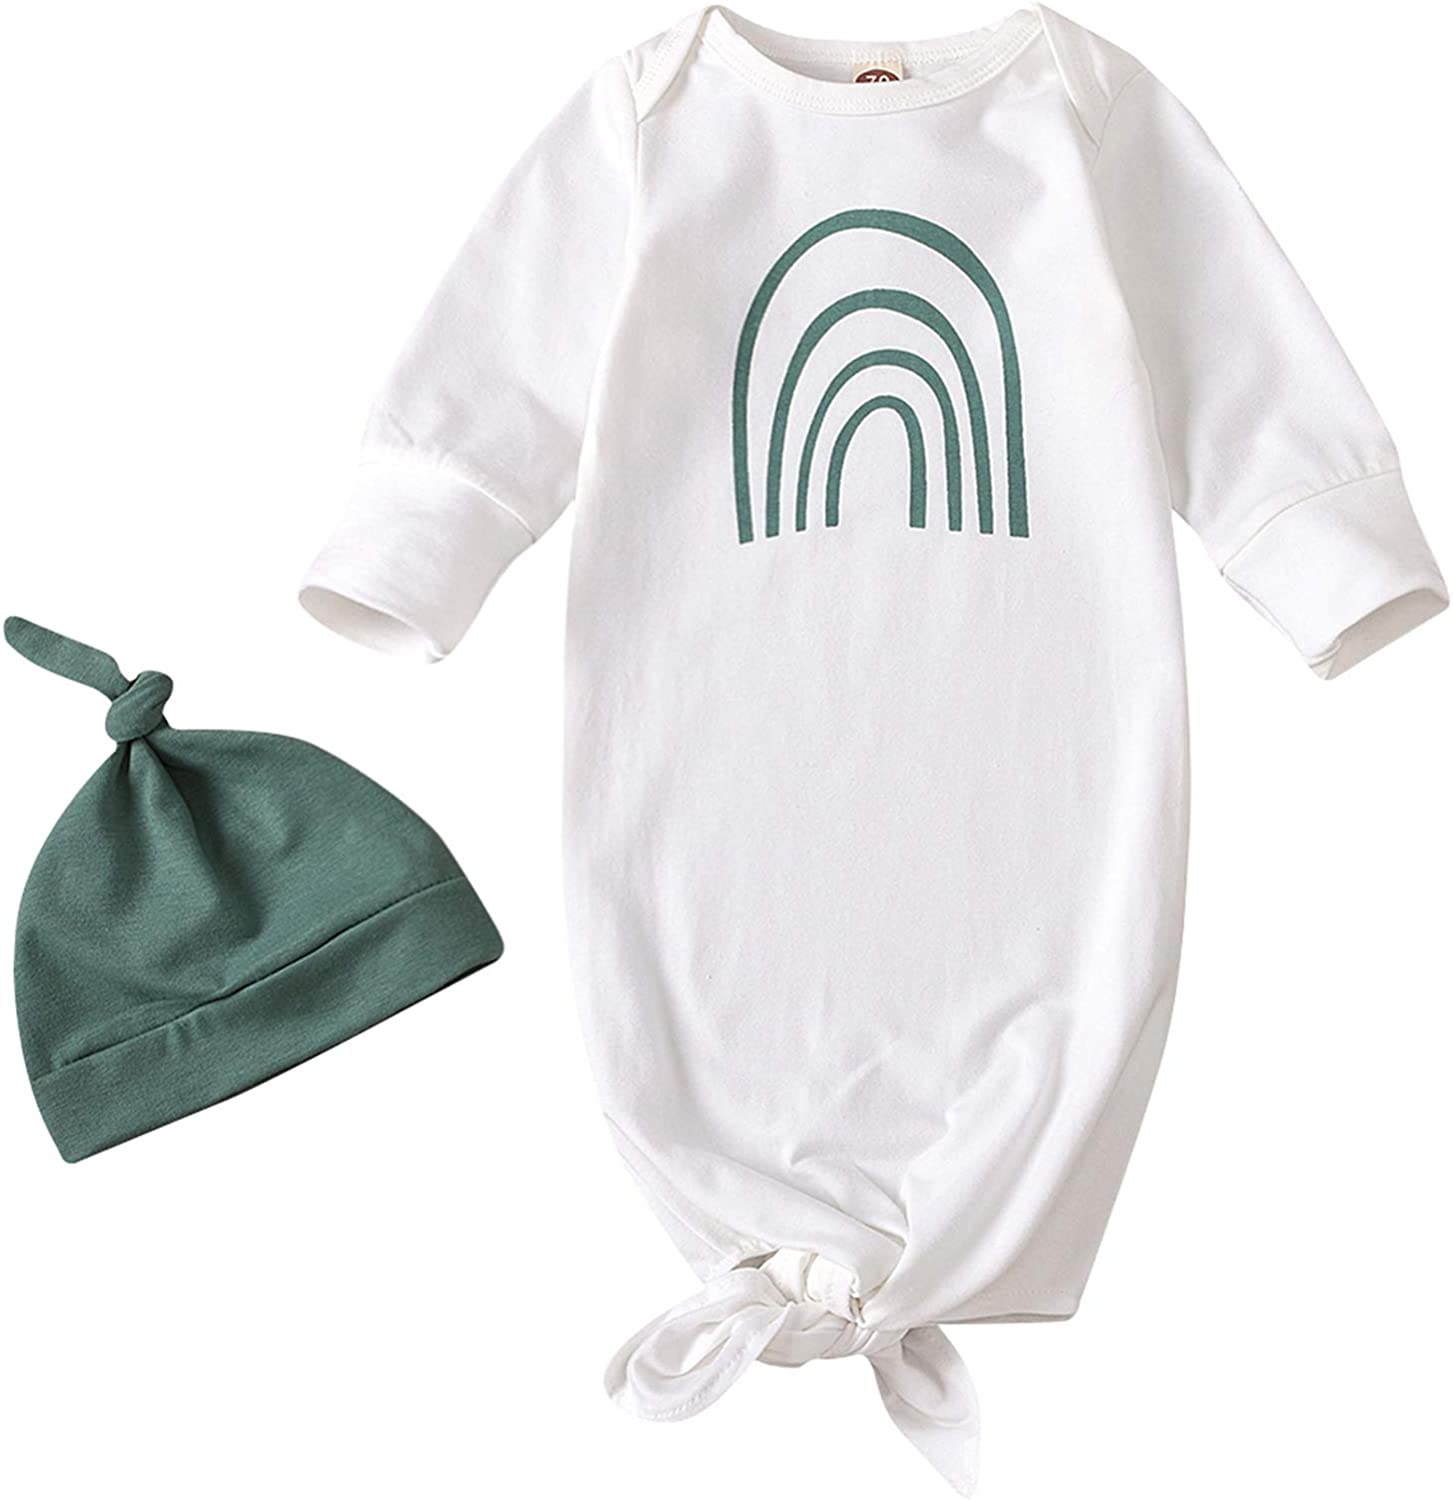 Newborn outlet Unisex Kids Lovely Sleeper Miami Mall Gown Hat with Knotted Sl Baby